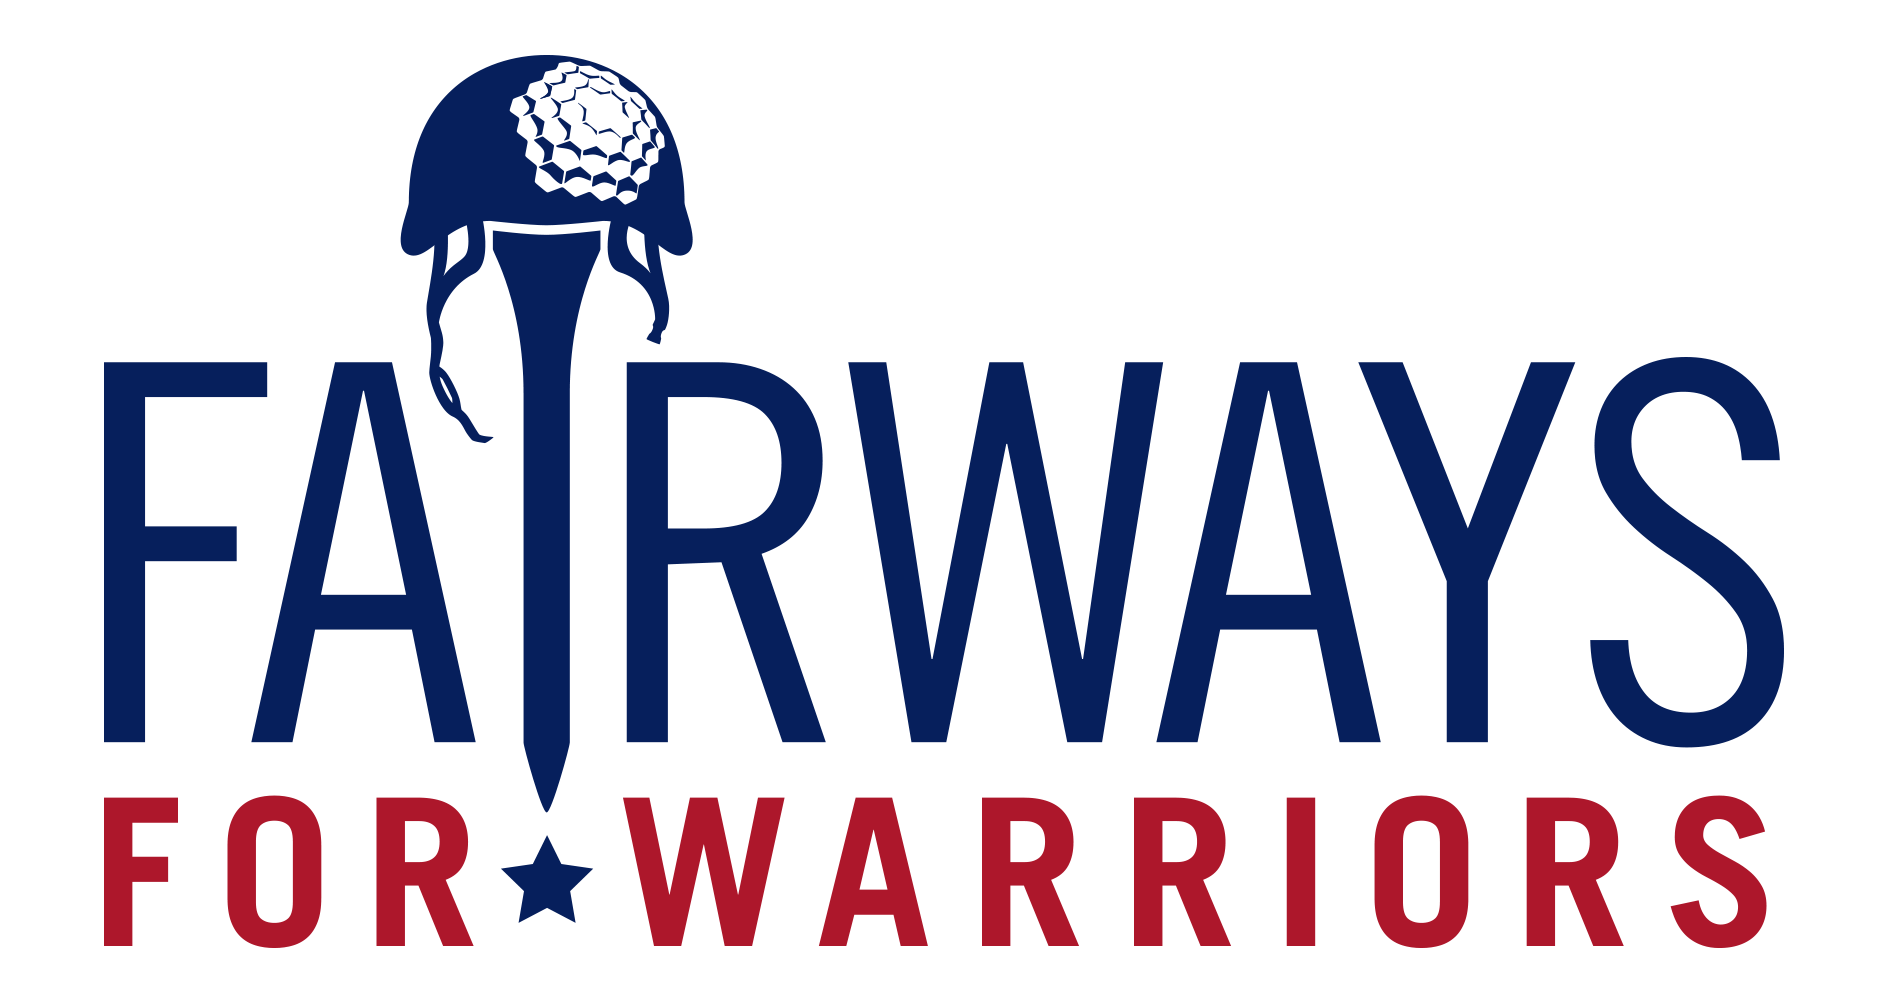 Fairways for Warriors